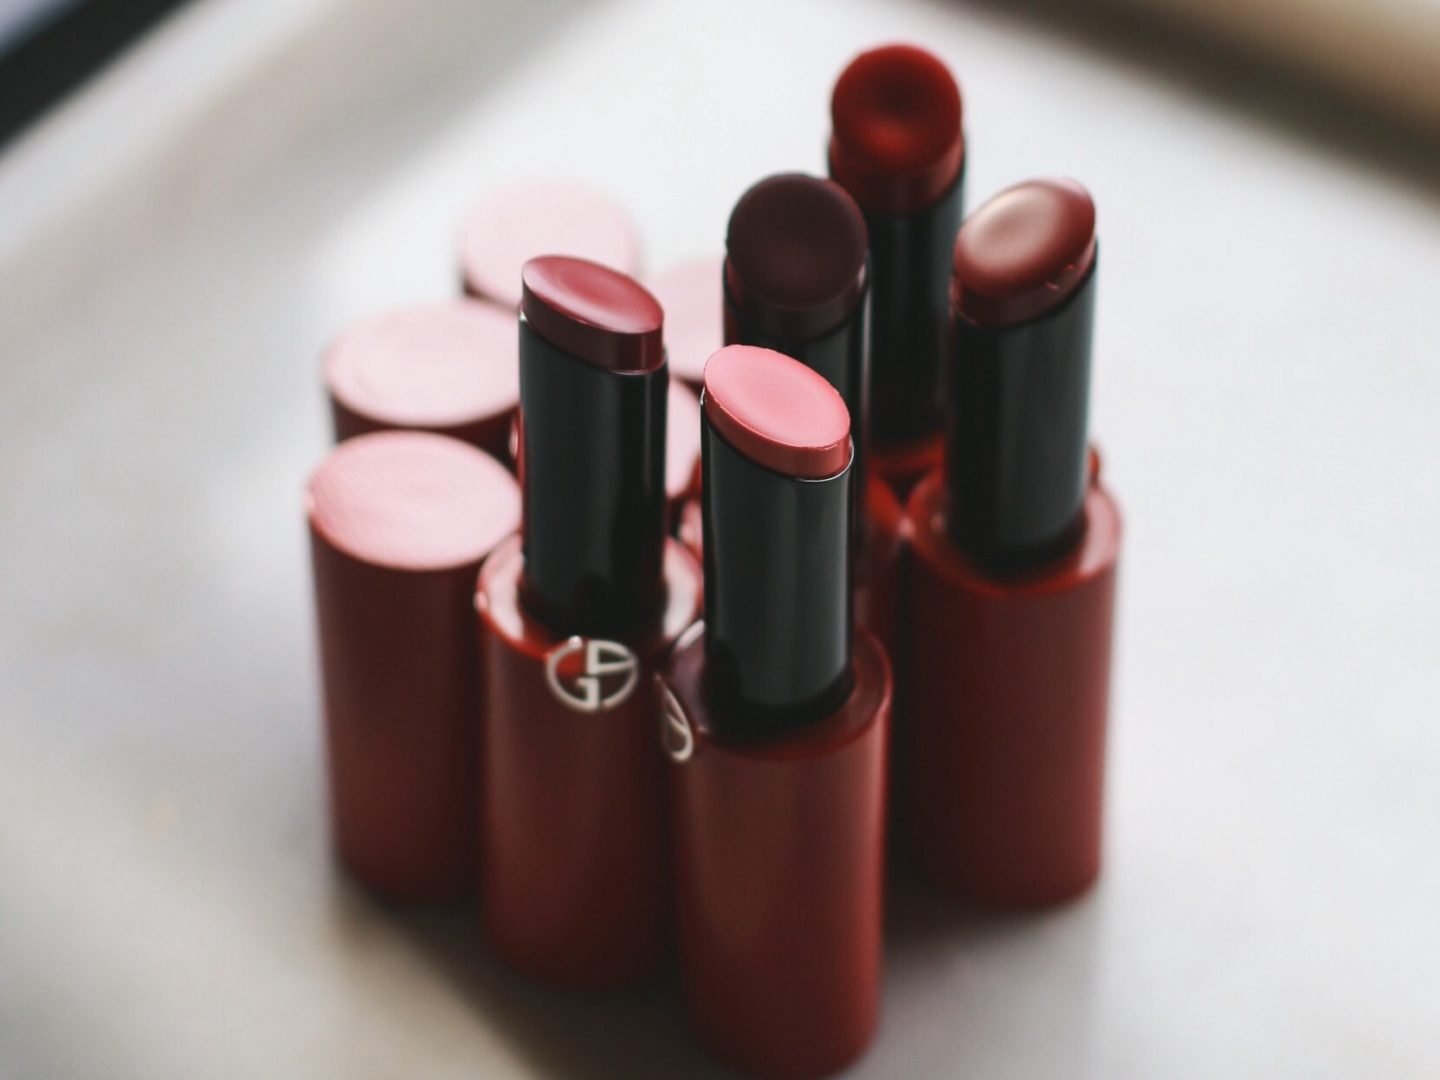 New From Armani Beauty | Ecstasy Shine Lipsticks